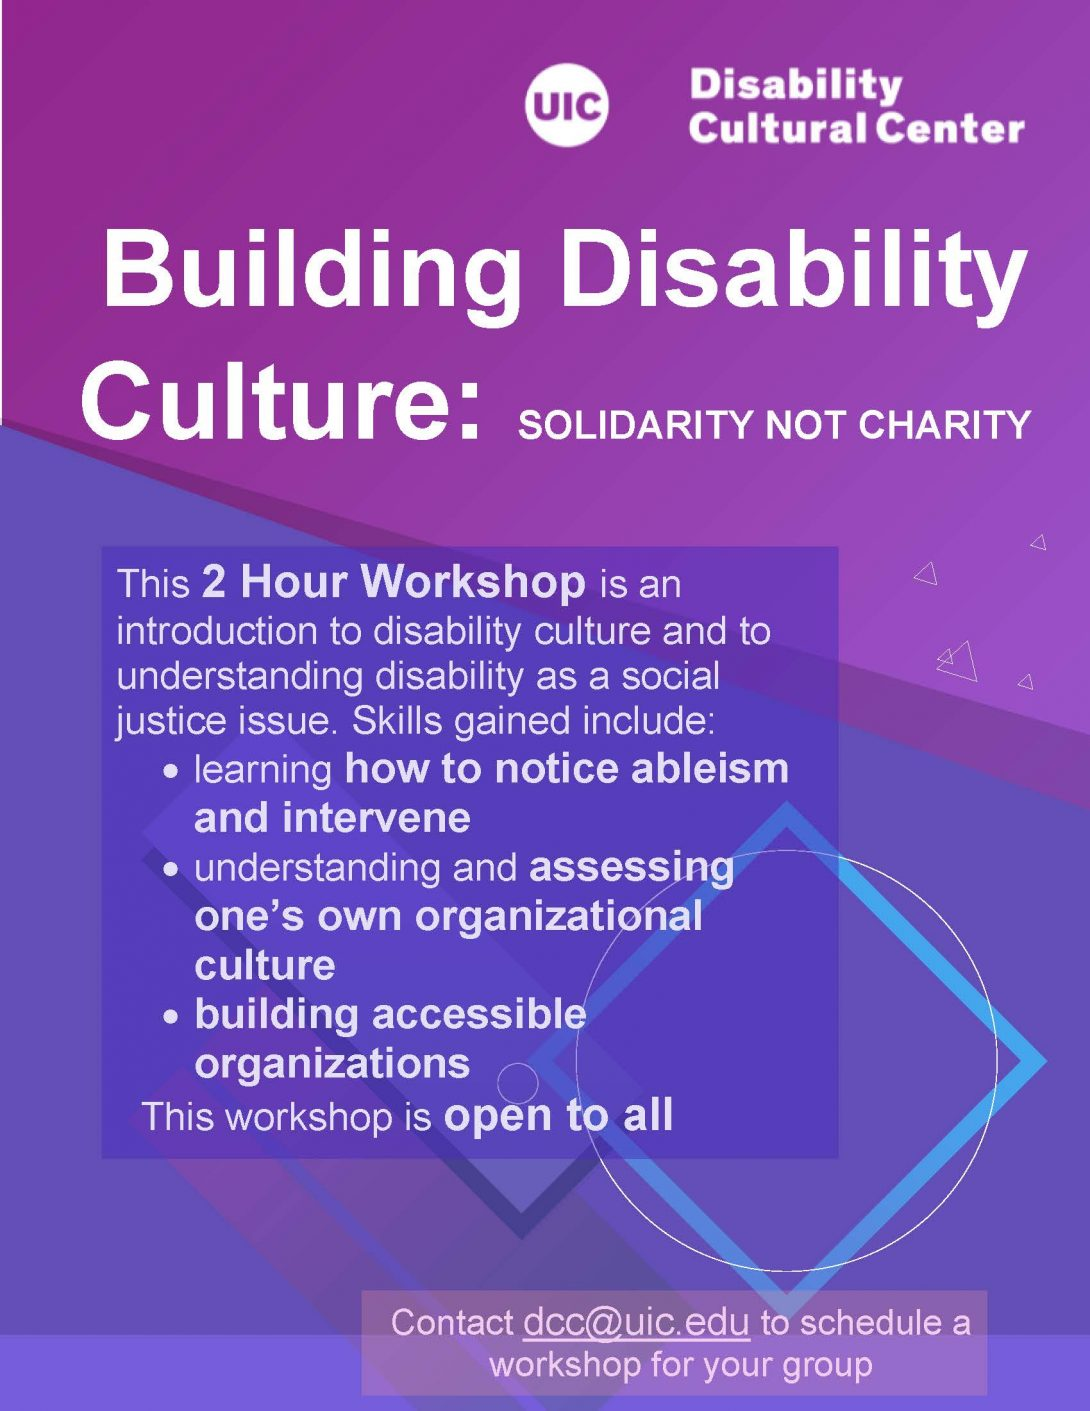 Building Disability Culture: Solidarity Not Charity flyer